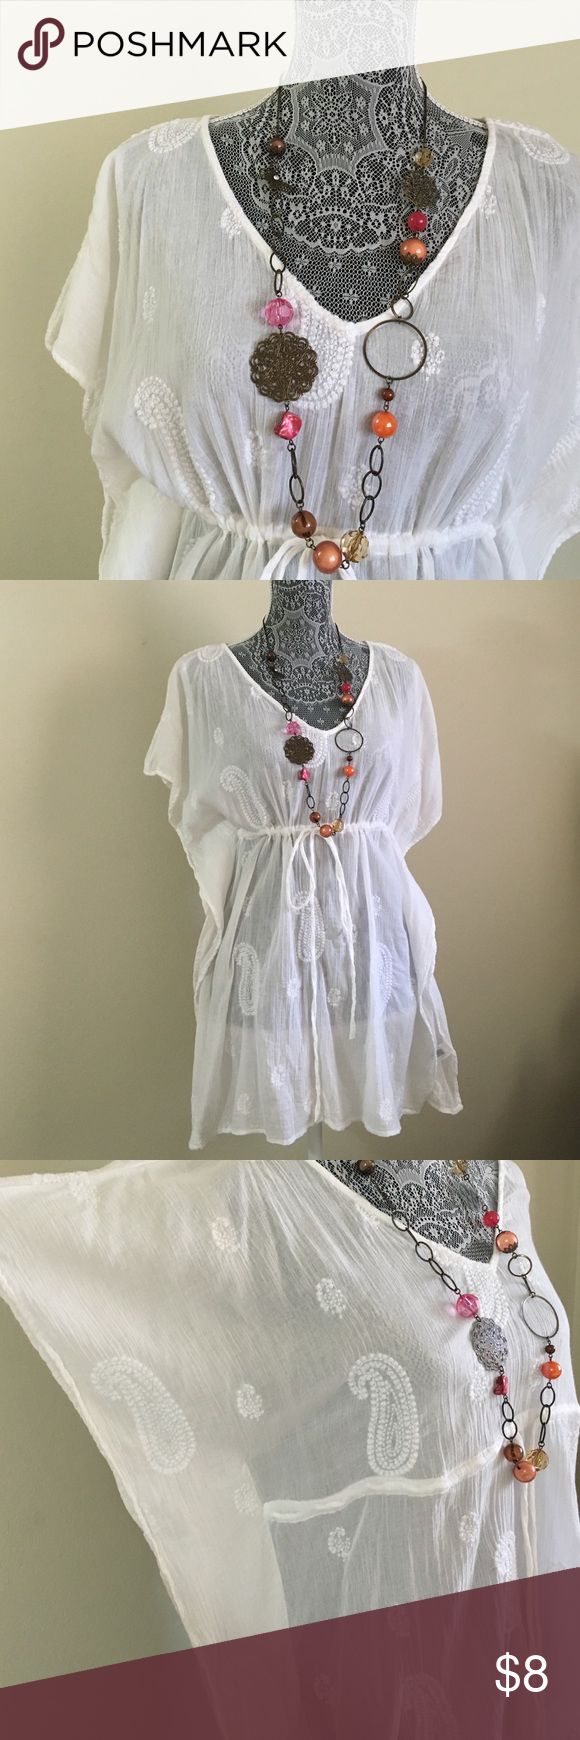 White Swimsuit Coverup 100% cotton. Embroidered adjustable pull sting. See thru. Beach coverup. Old Navy Swim Coverups